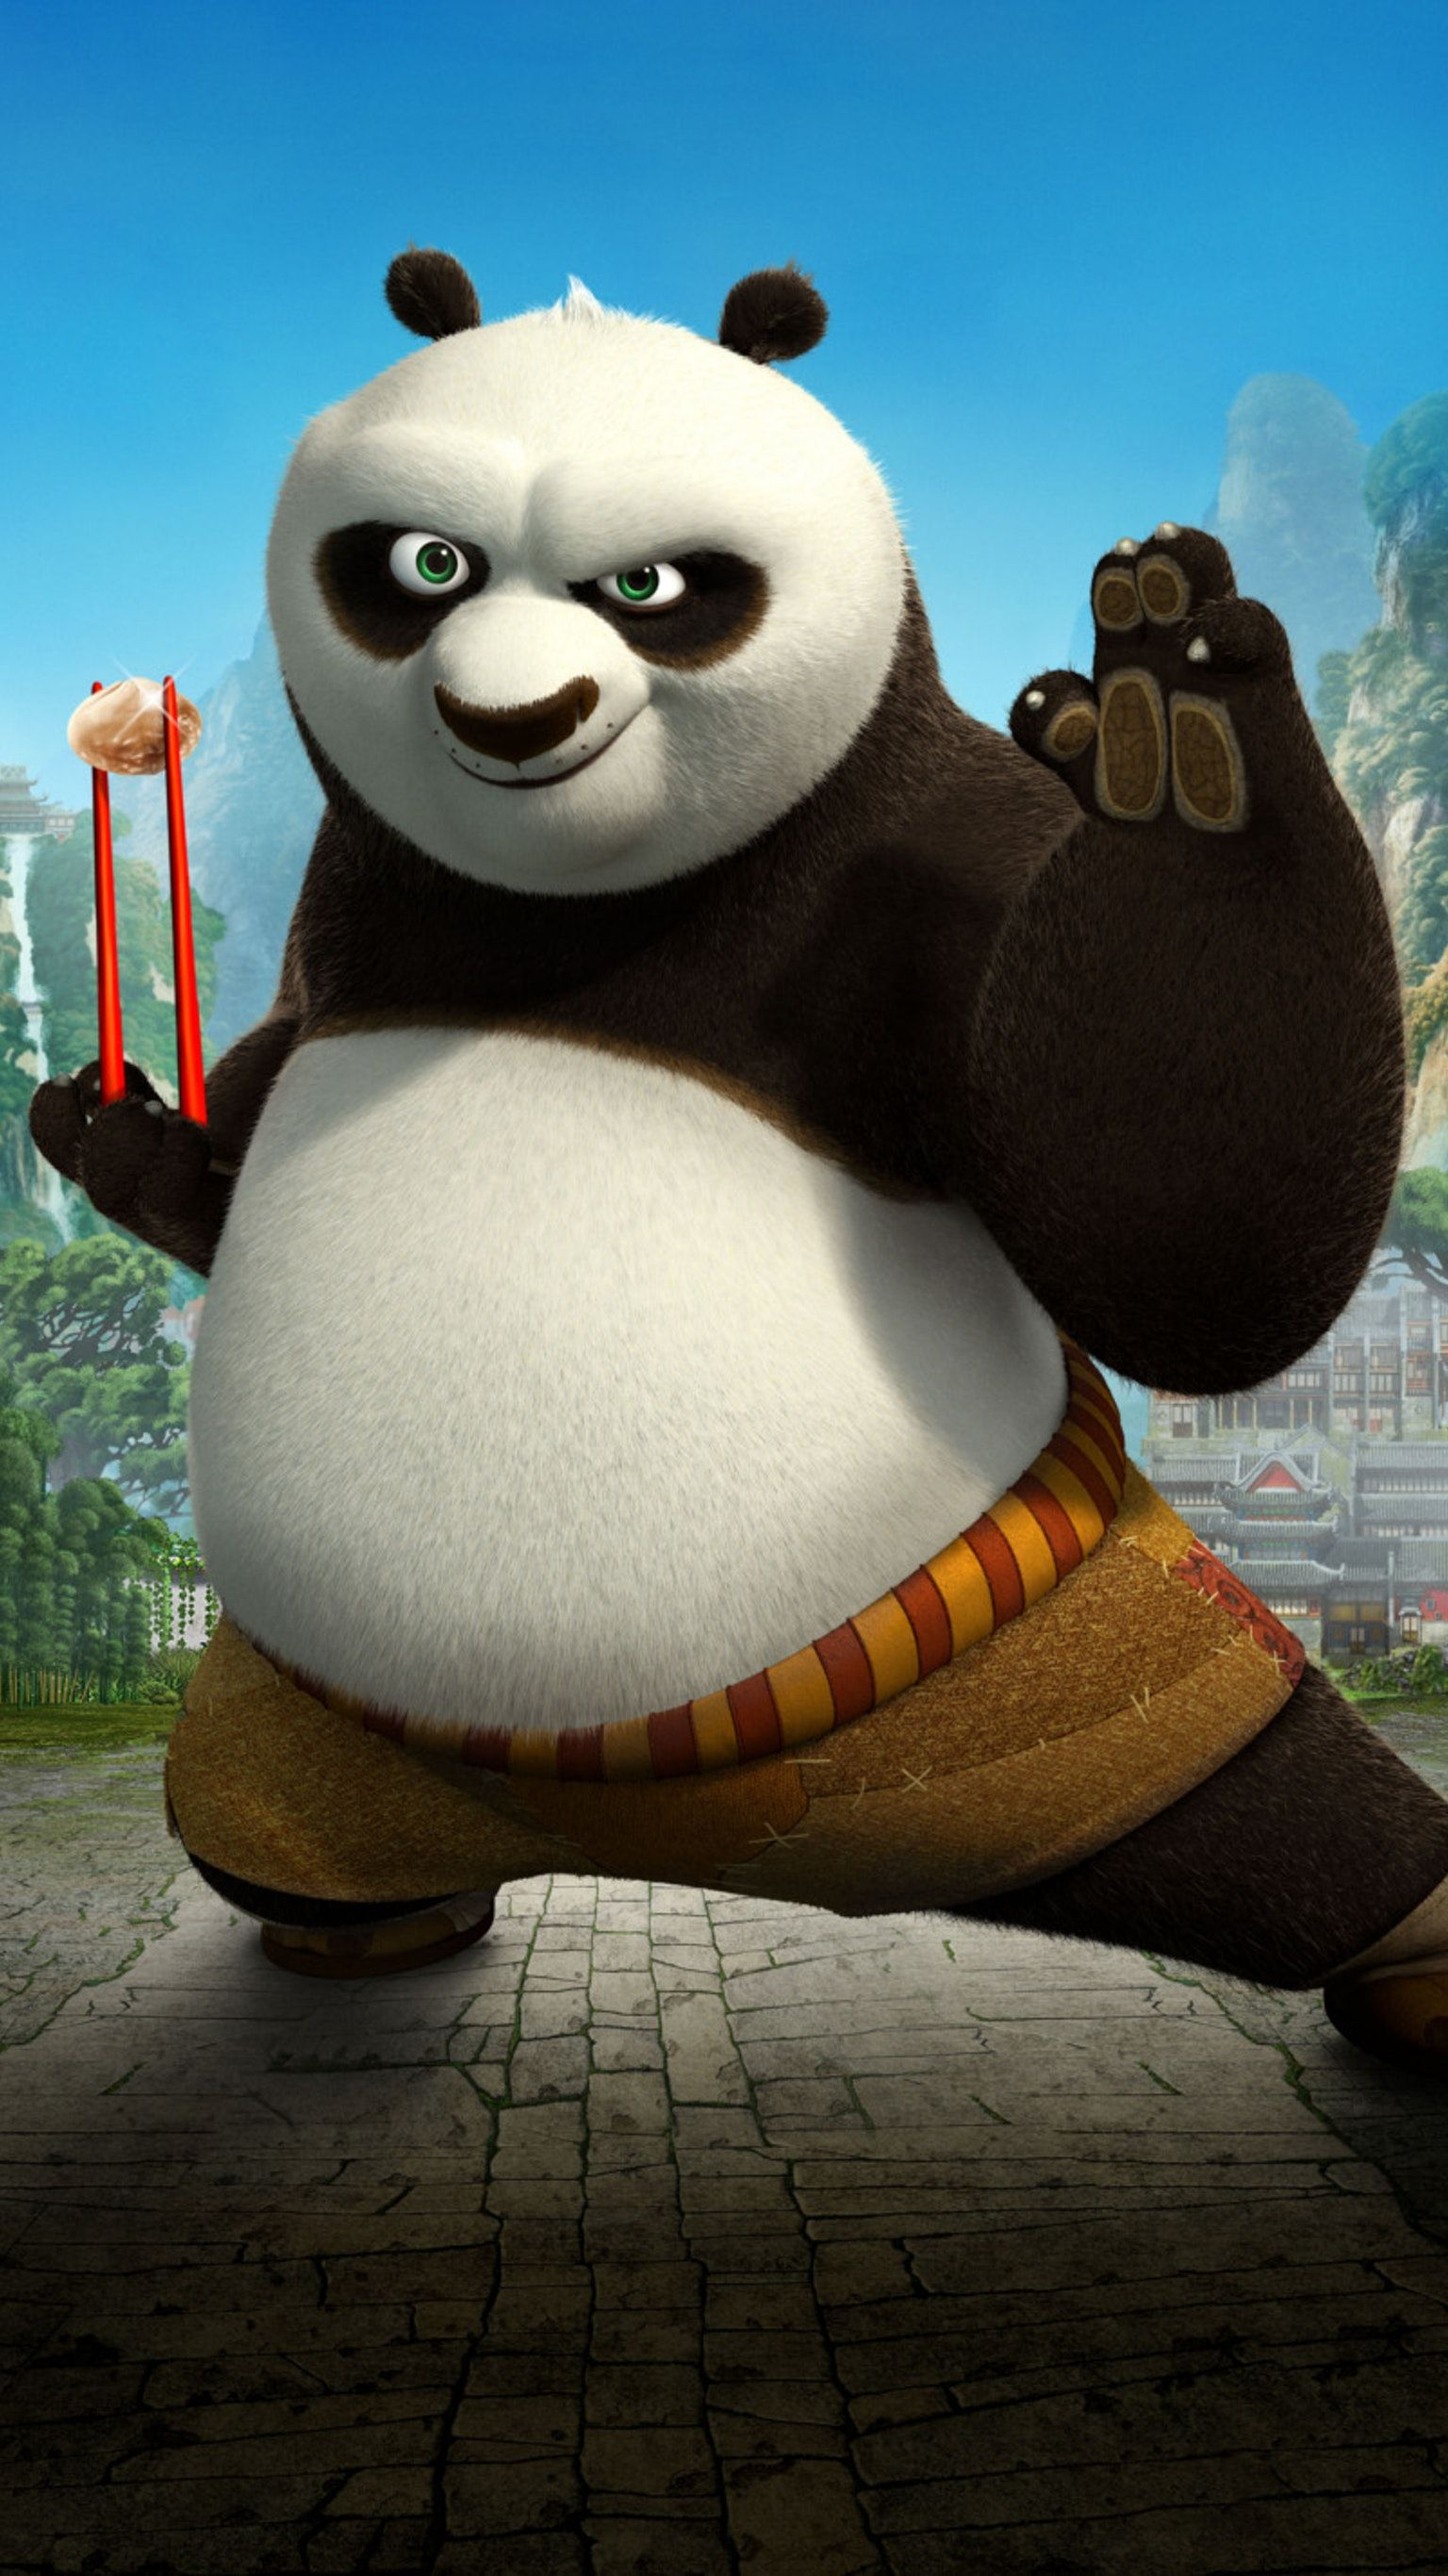 Kung Fu Panda 2 2011 Phone Wallpaper Moviemania Kung Fu Panda Cartoon Panda Panda Wallpapers